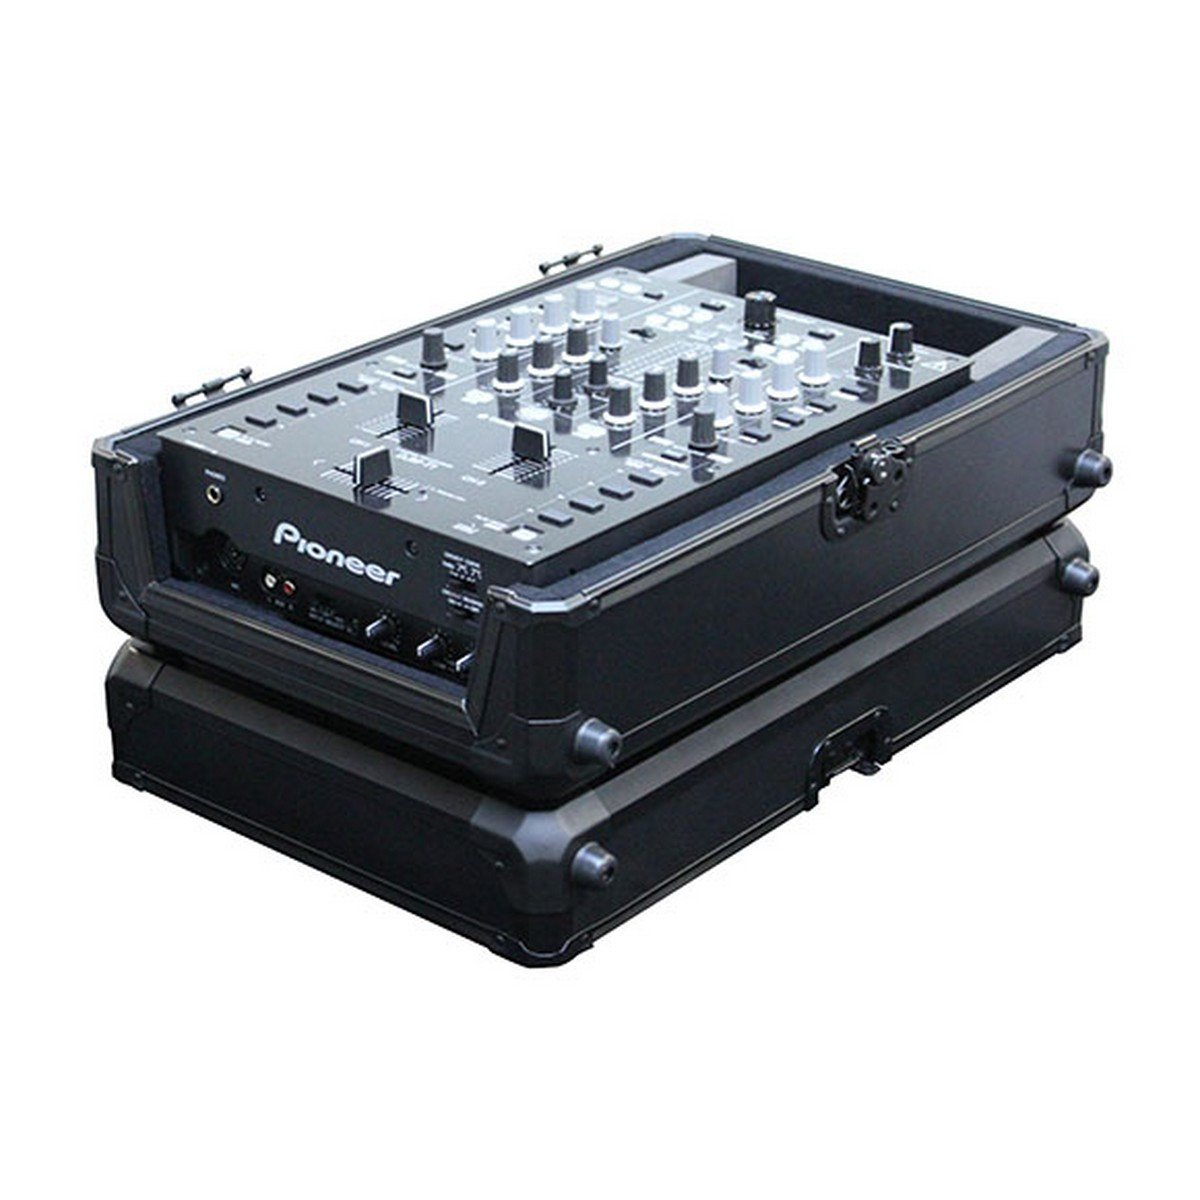 Odyssey K10MIXBL Black Krom Series 10 DJ Mixer Case Odyssey Innovative Designs